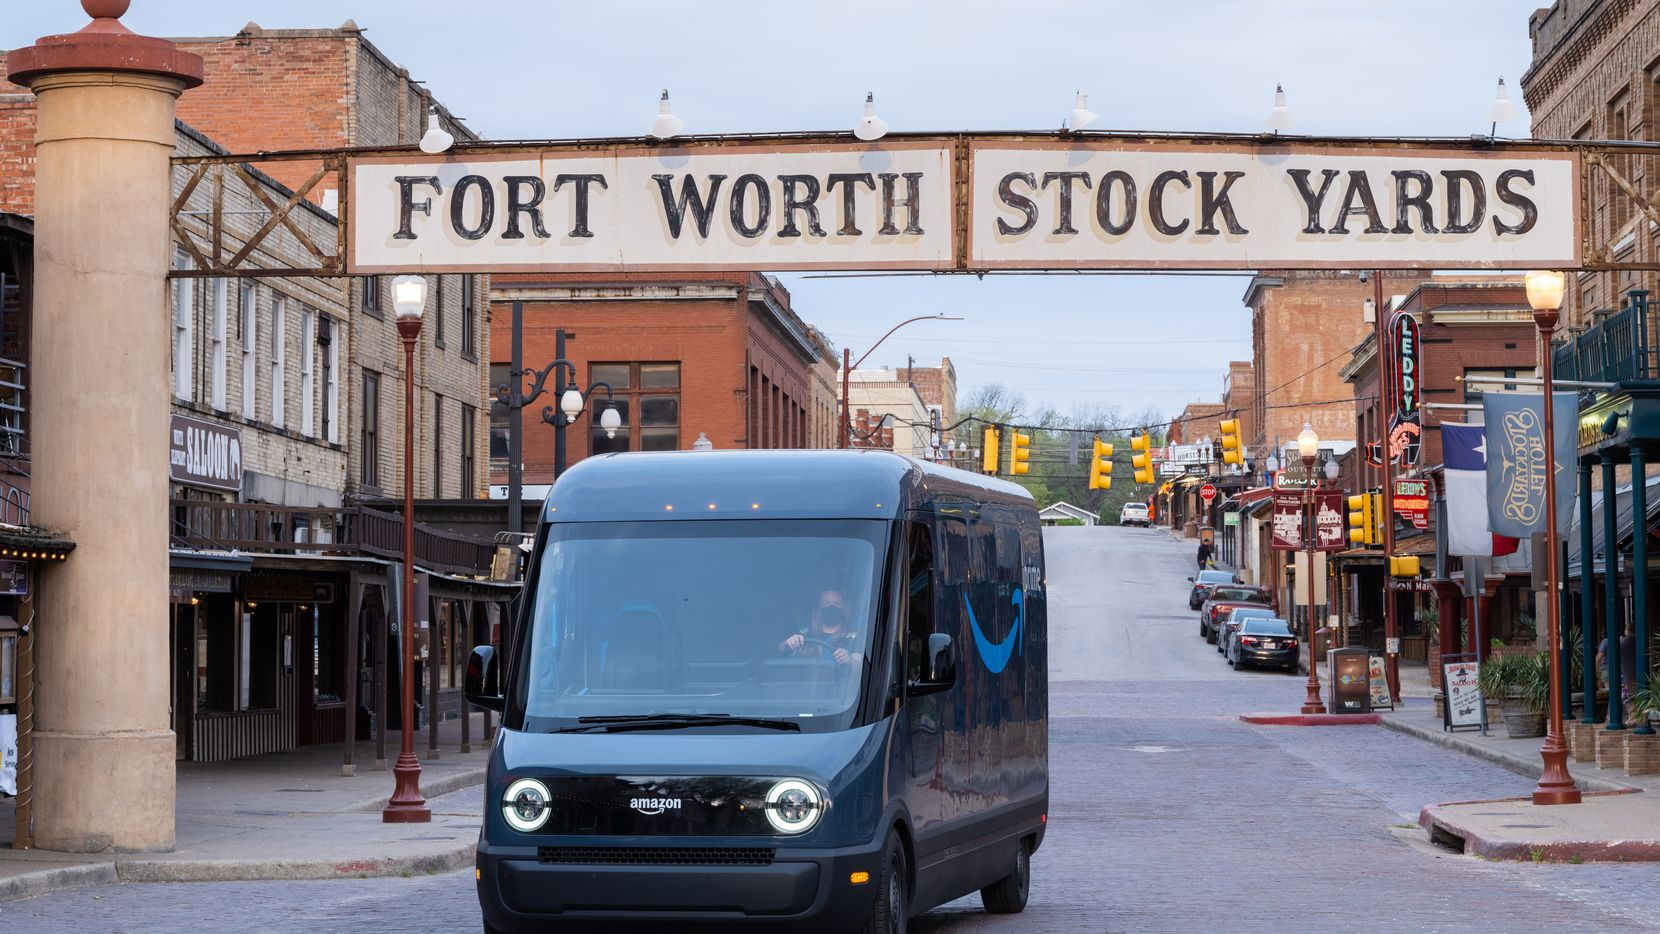 Designed and built in partnership with Rivian, Amazon s first custom electric delivery vehicle was unveiled last fall. Here it is at the Fort Worth Stockyards.